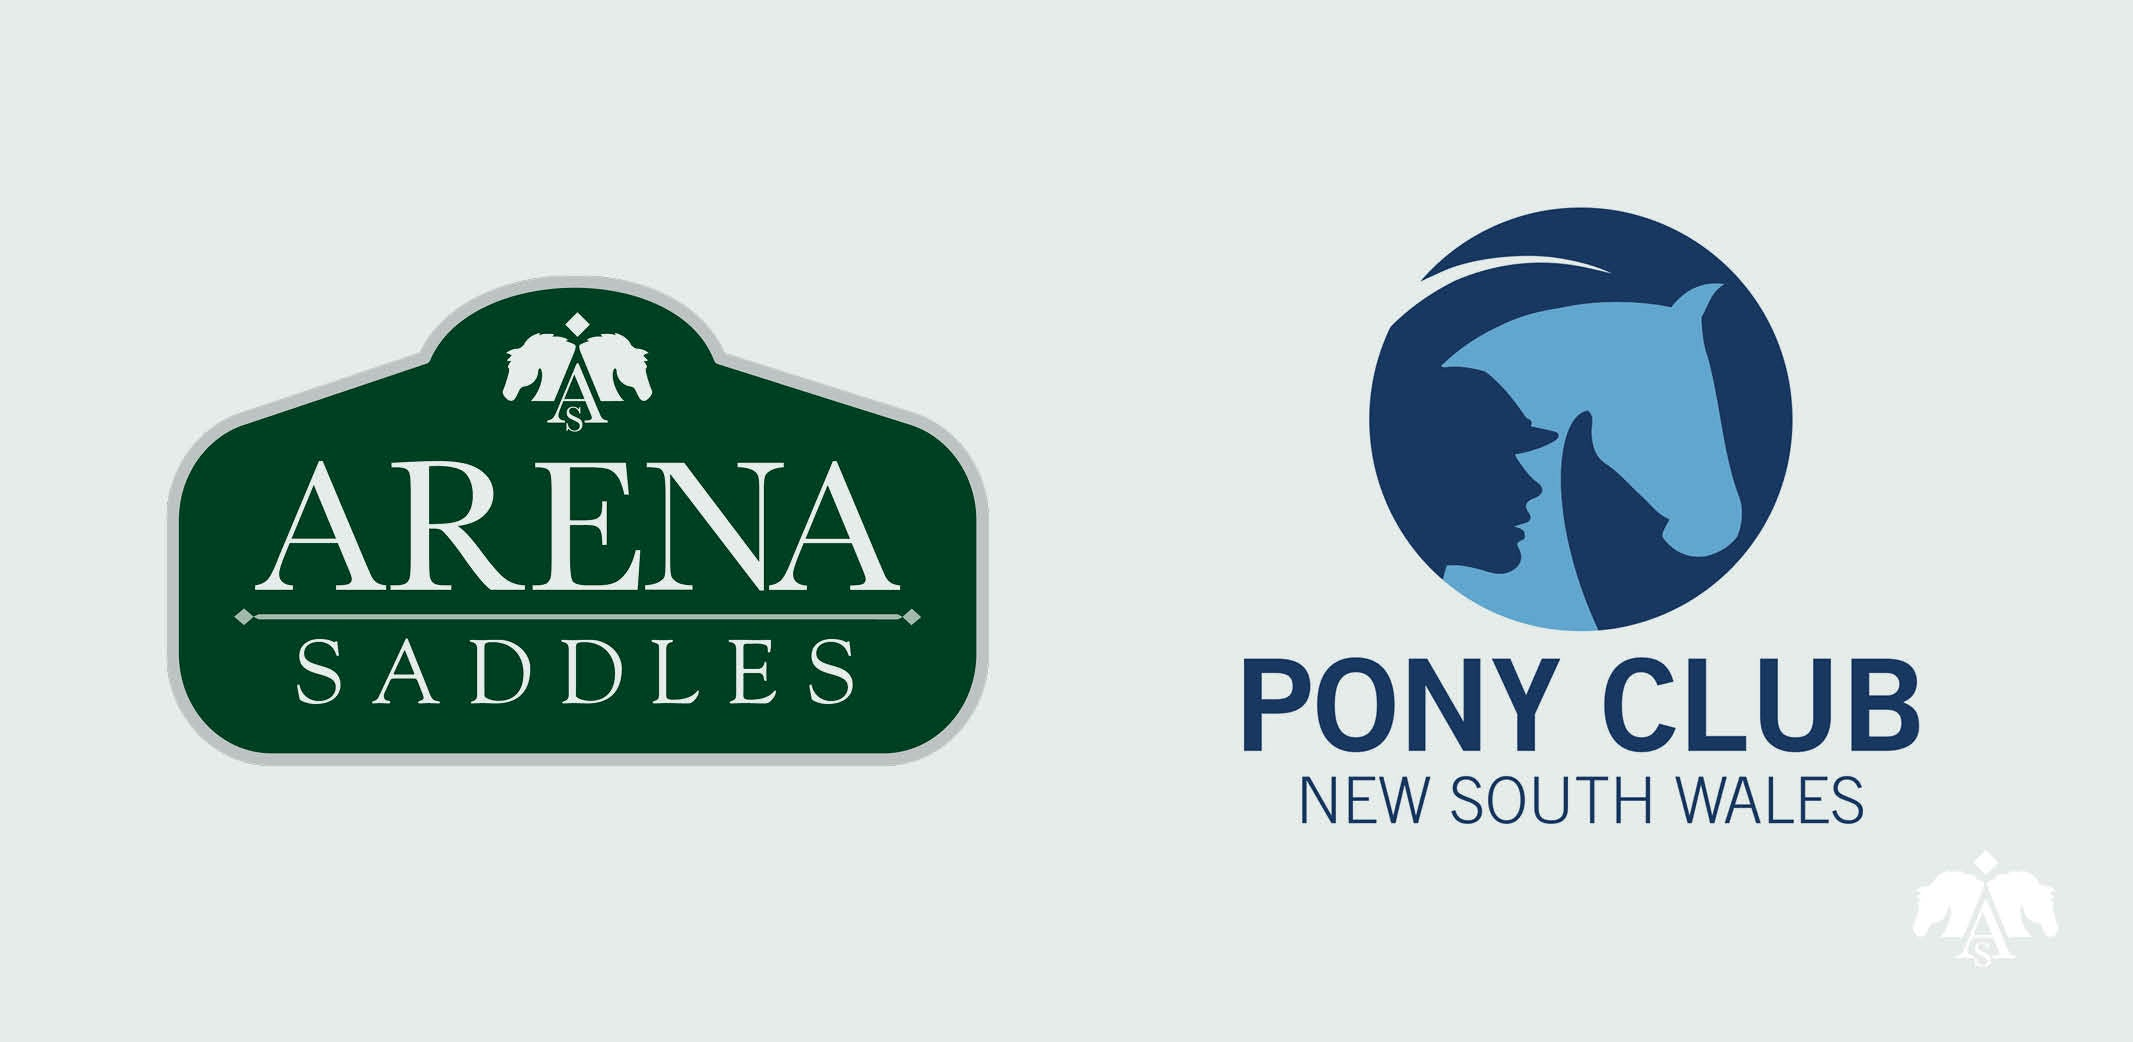 Partnership announcement: The Pony Club Association of NSW